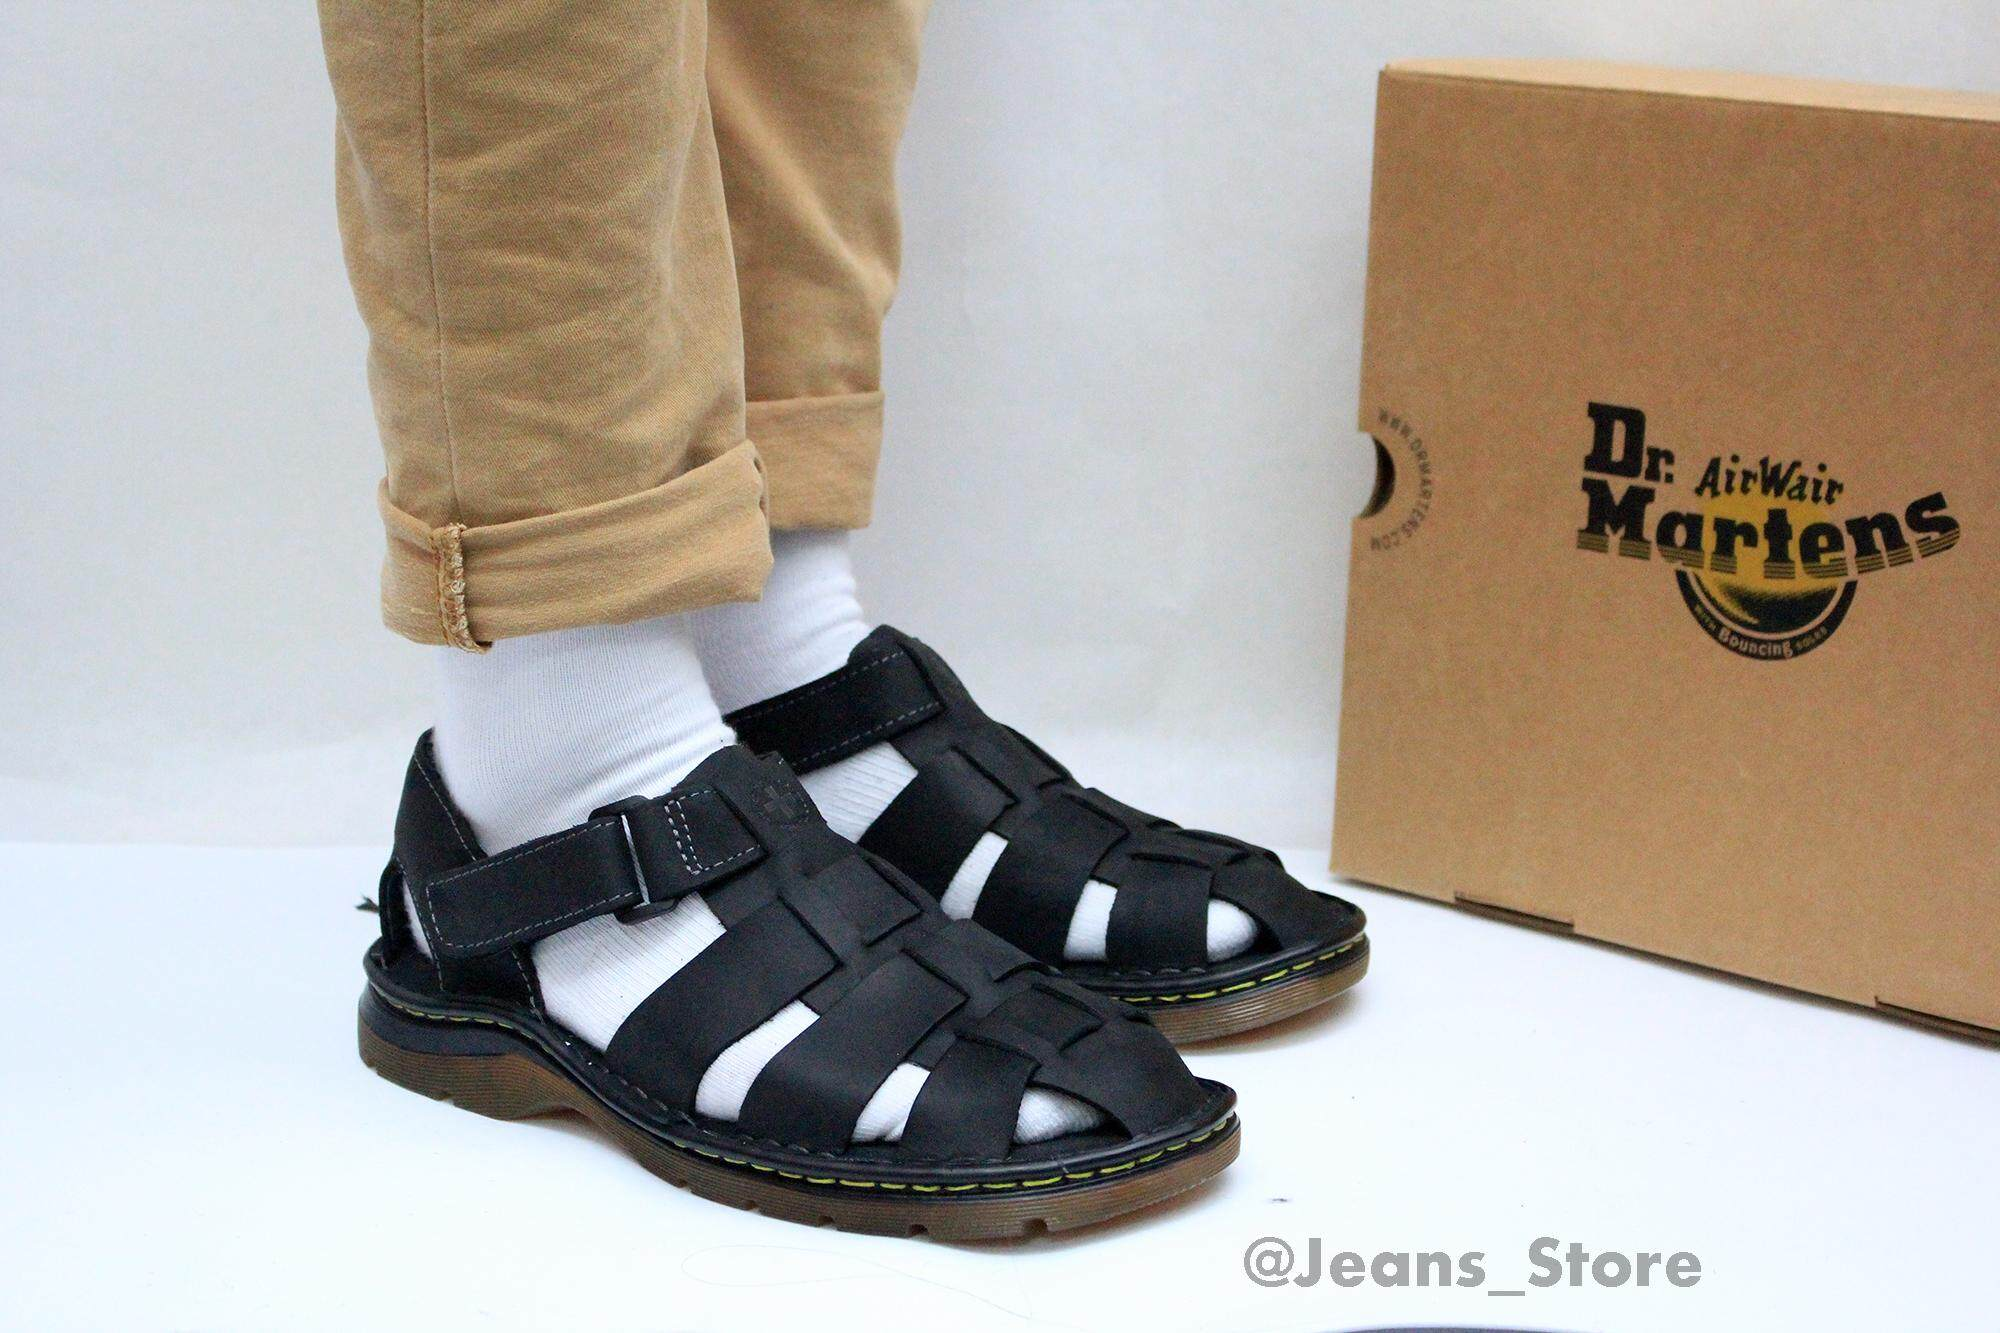 5ca22fab 2 Marten Best Dr Mens Malaysia Shop In Sandals Price WBrdxoCe